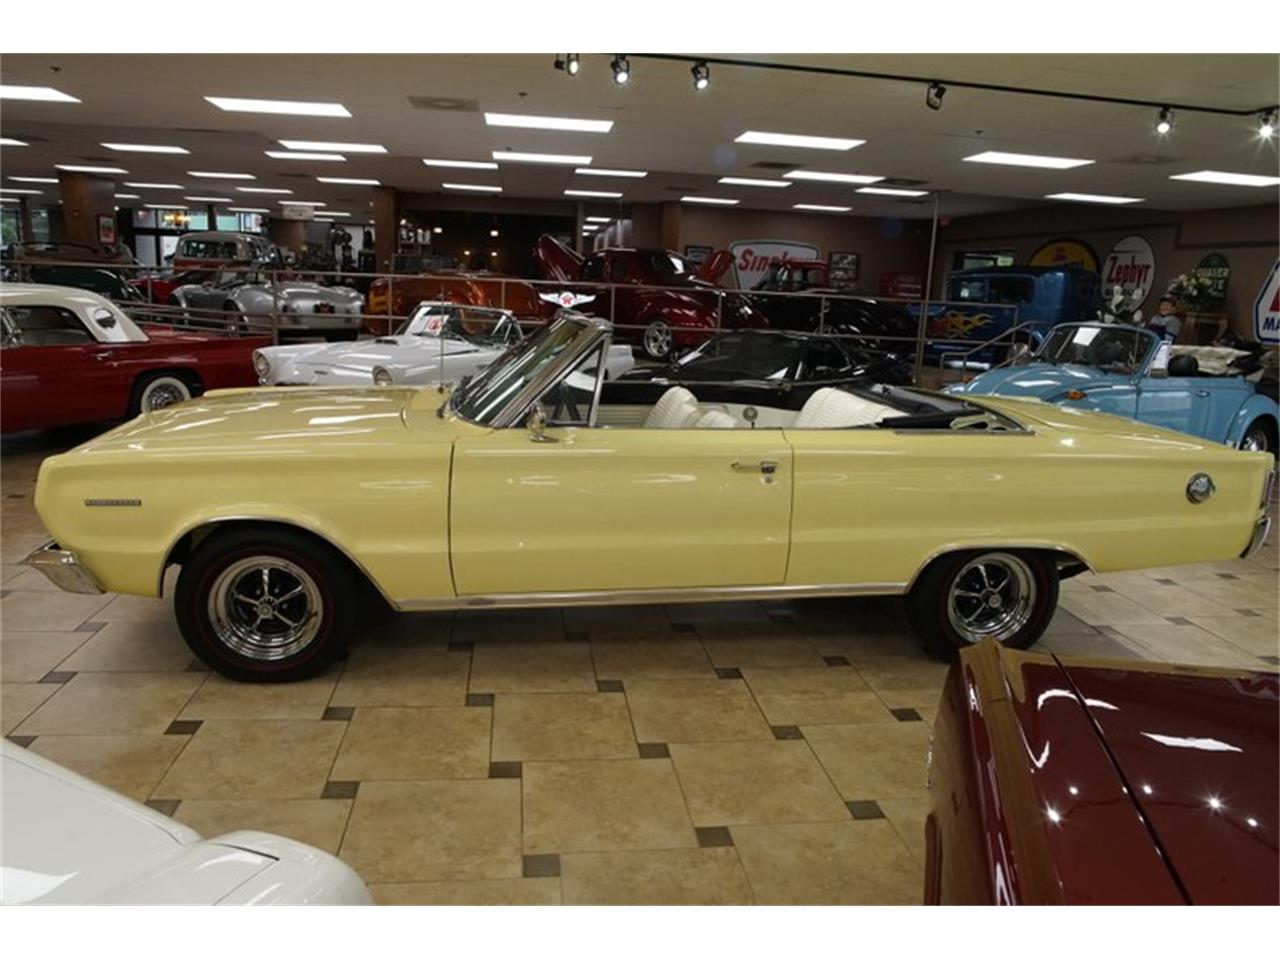 1967 Plymouth Belvedere (CC-1240008) for sale in Venice, Florida